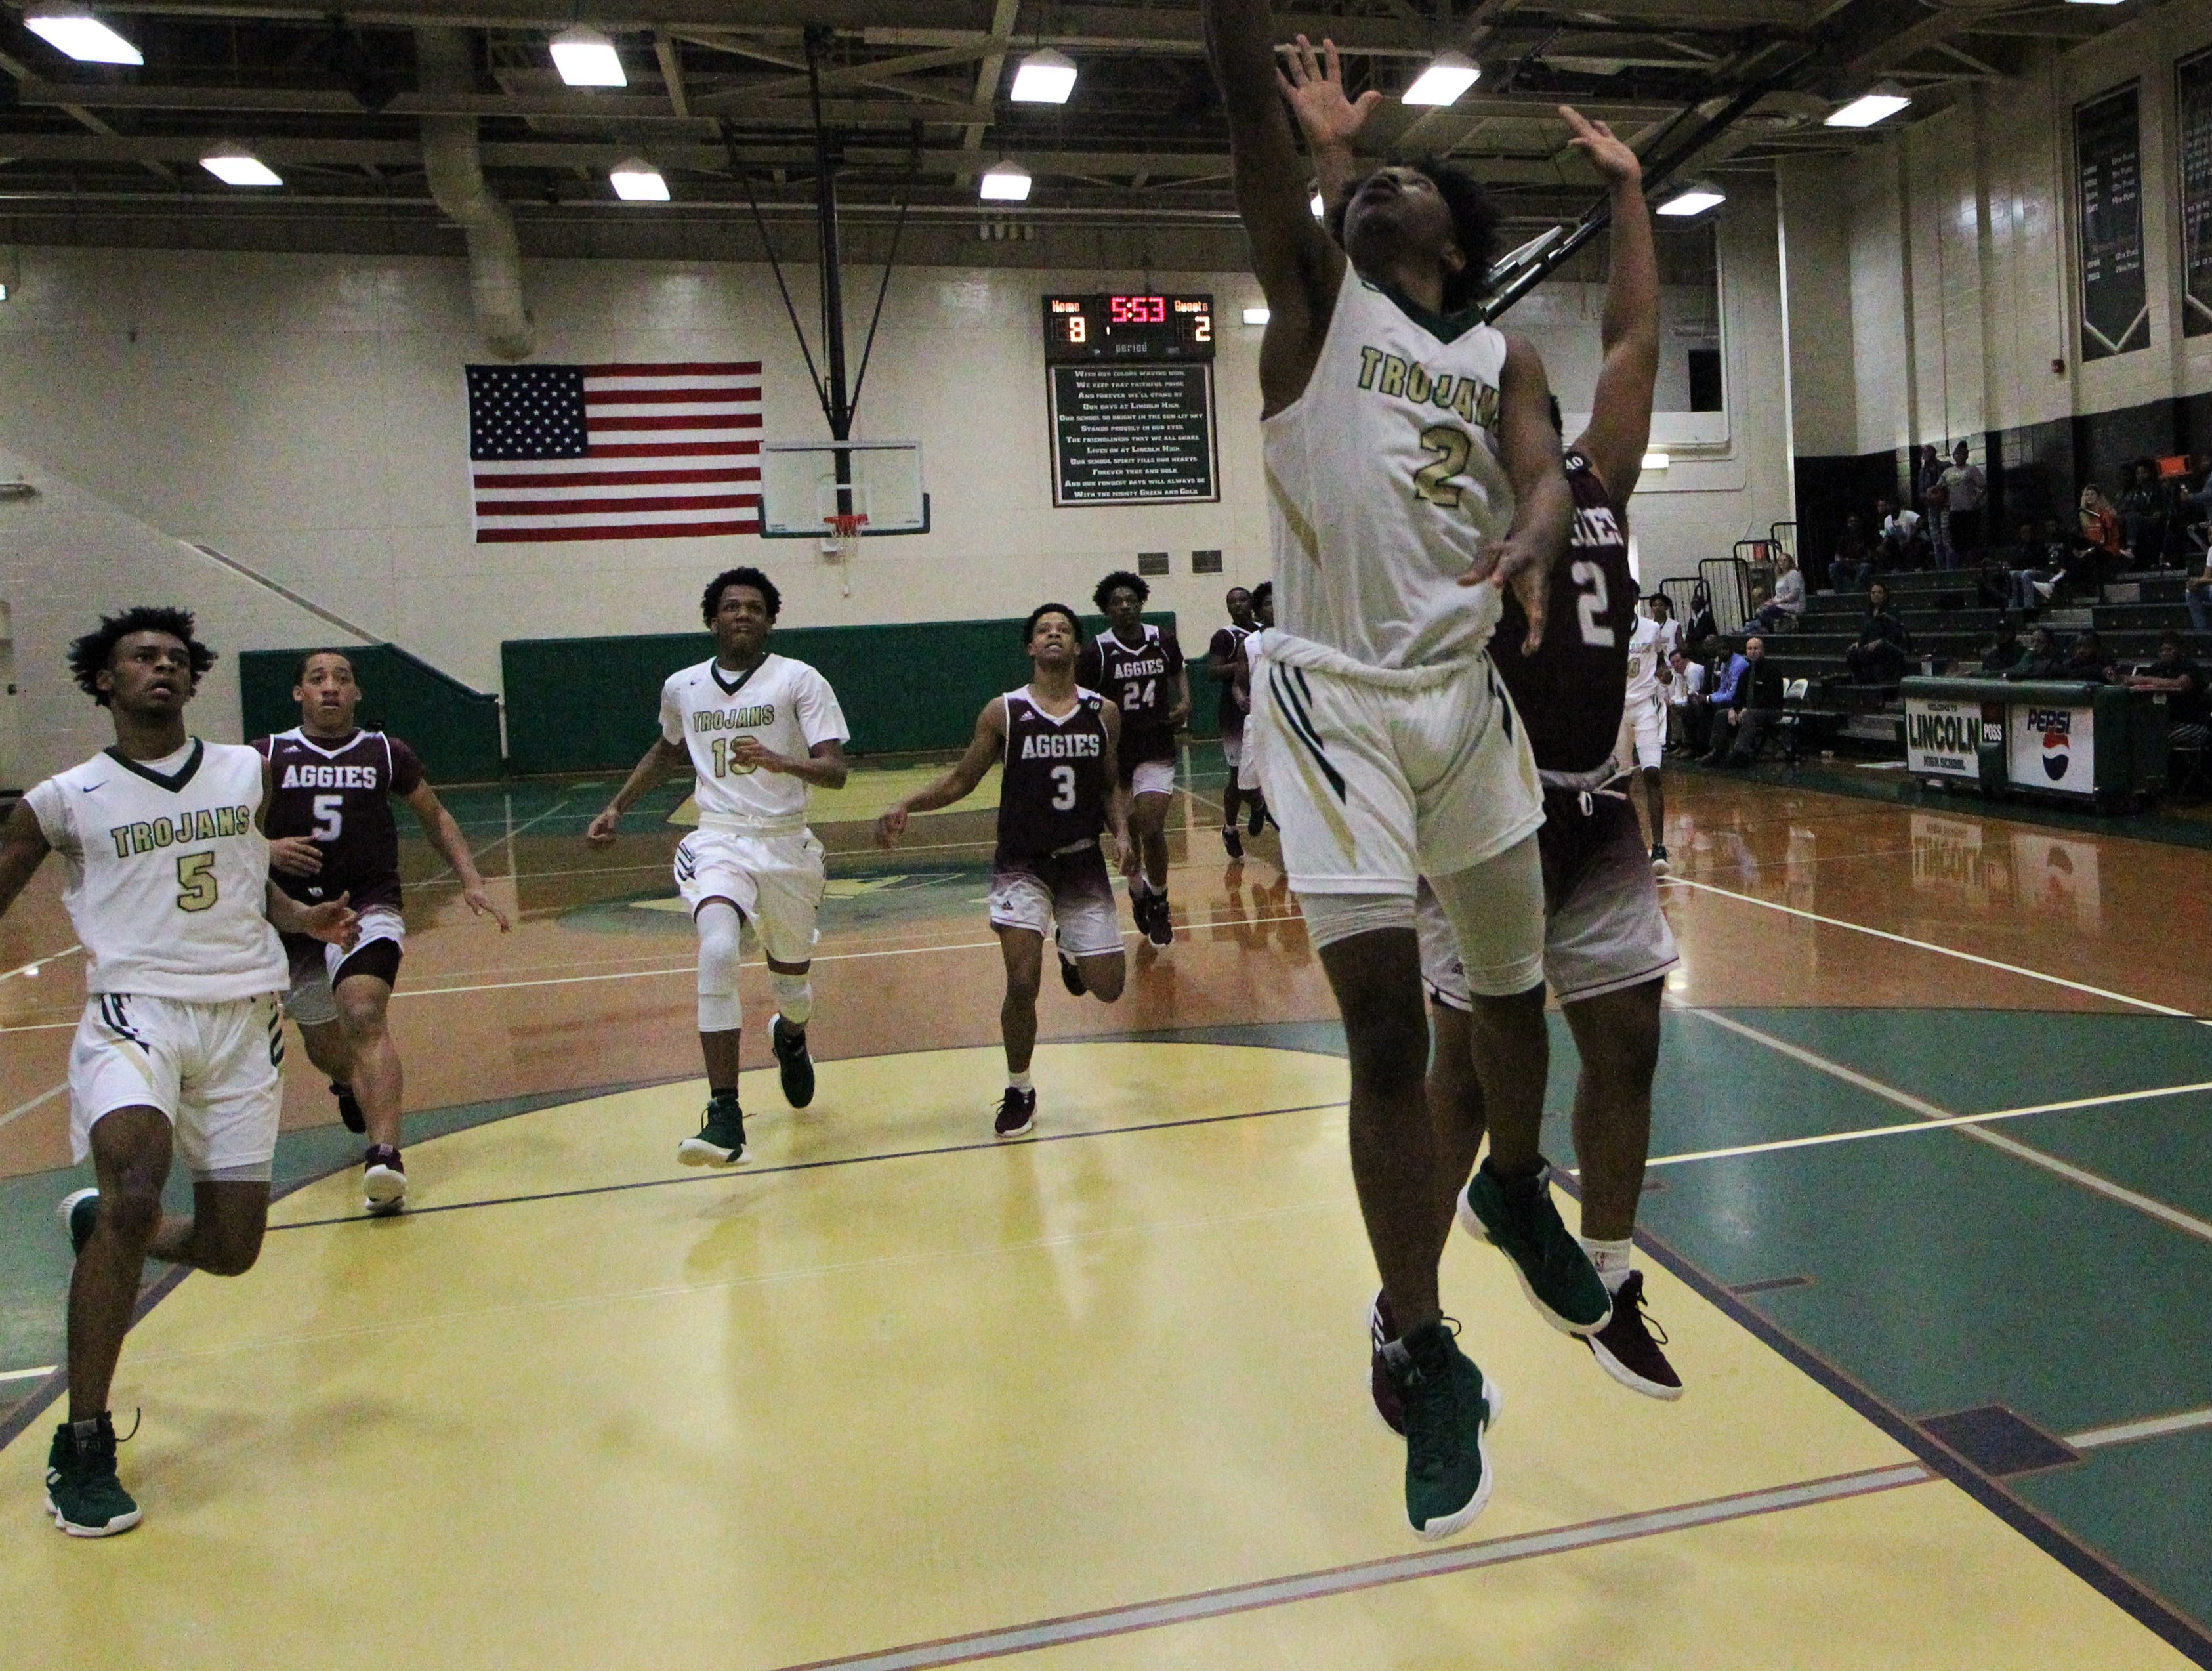 Lincoln's Zae Wiggins drives for a fastbreak layup as the Trojans beat Tate 74-41 in a Region 1-8A semifinal on Feb. 26, 2019.